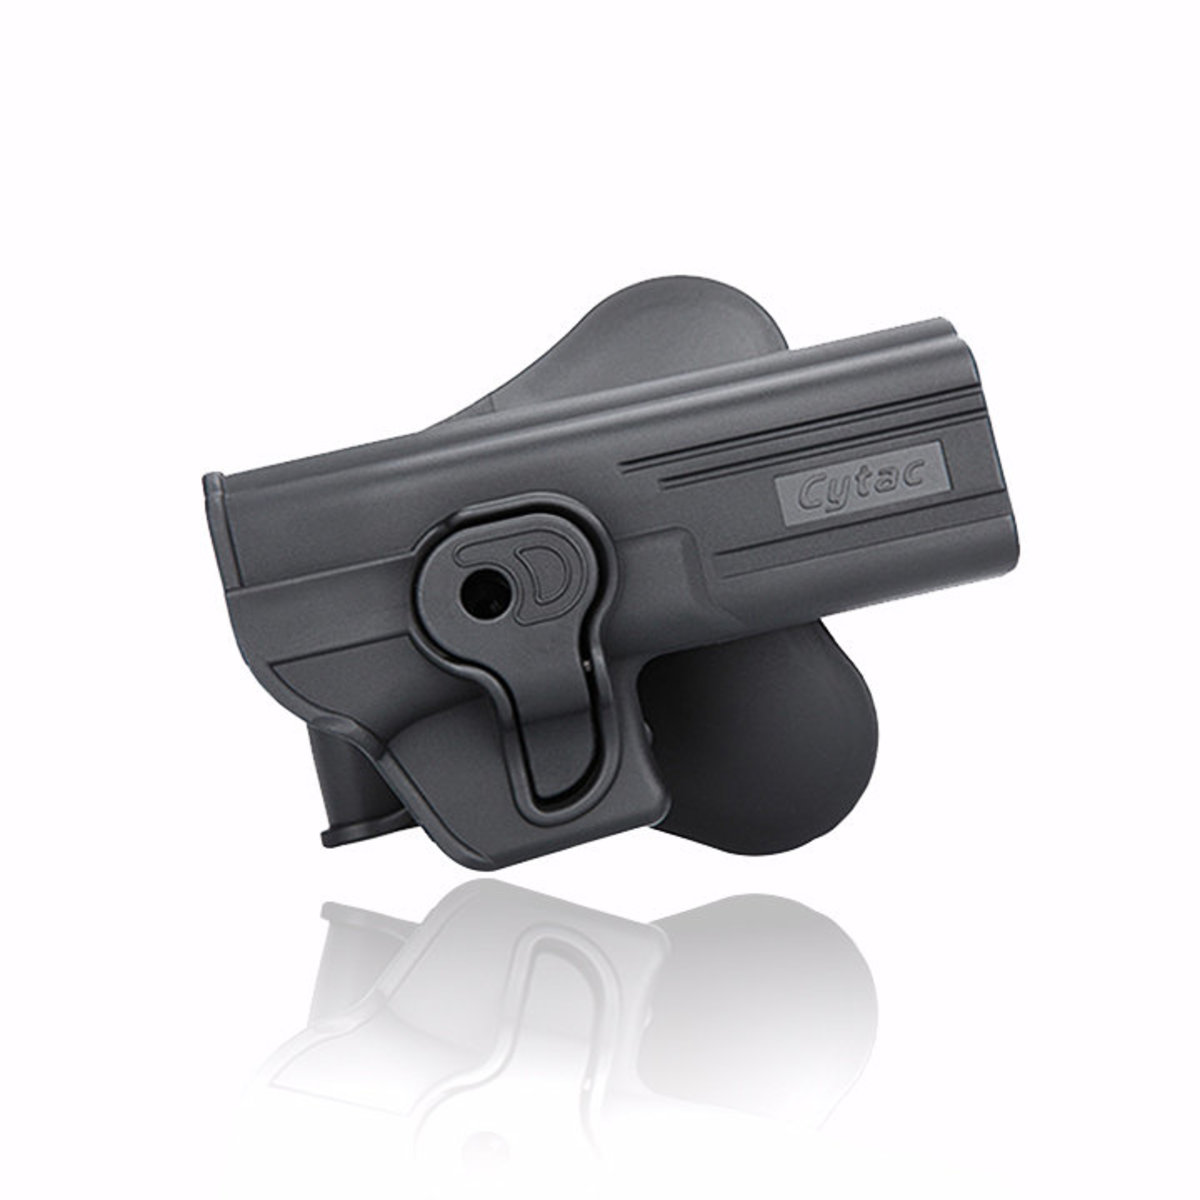 View larger image of Cytac OWB Holster - Fits GLOCK 17, 22, 31 (Fits Gen 1, 2, 3, 4)